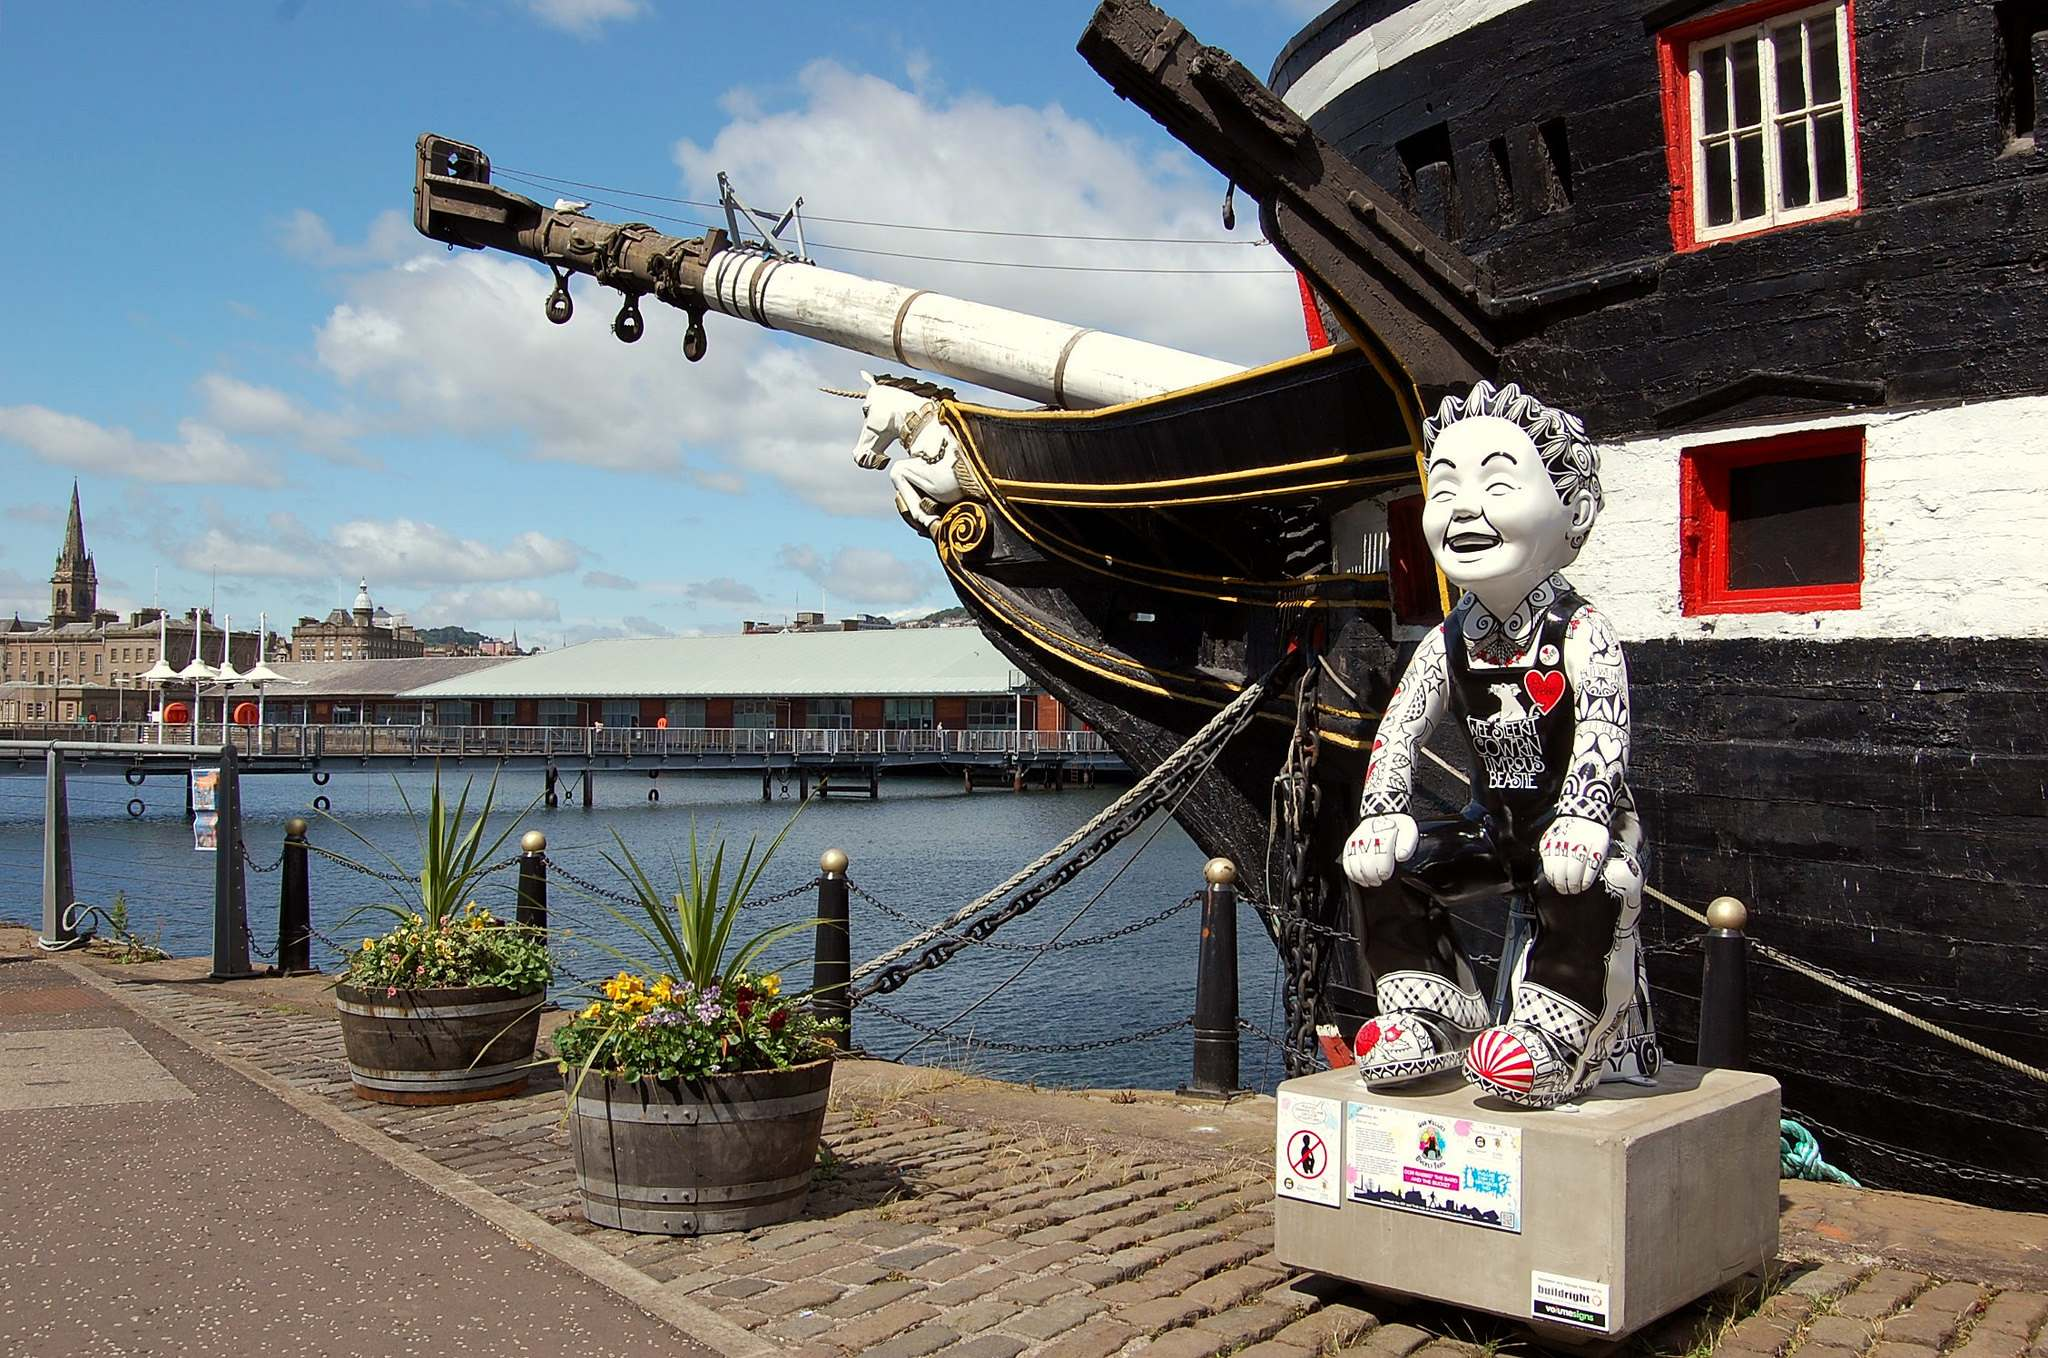 wullie Oor Wullie Bucket Trail in City of Dundee